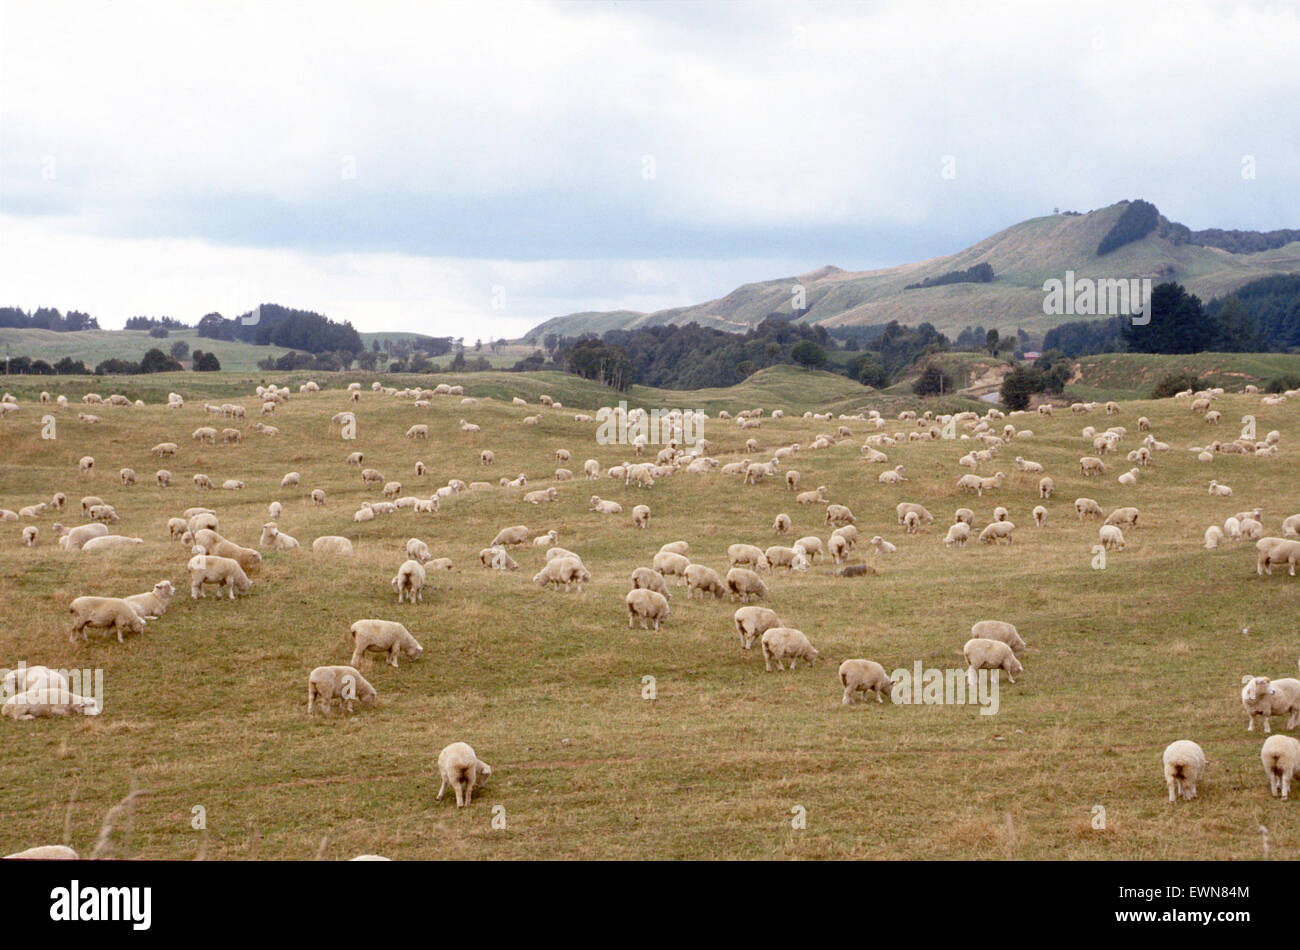 NEWZEALAND LANDSCAPE WITH SHEEP AND MOUNTAINS - Stock Image